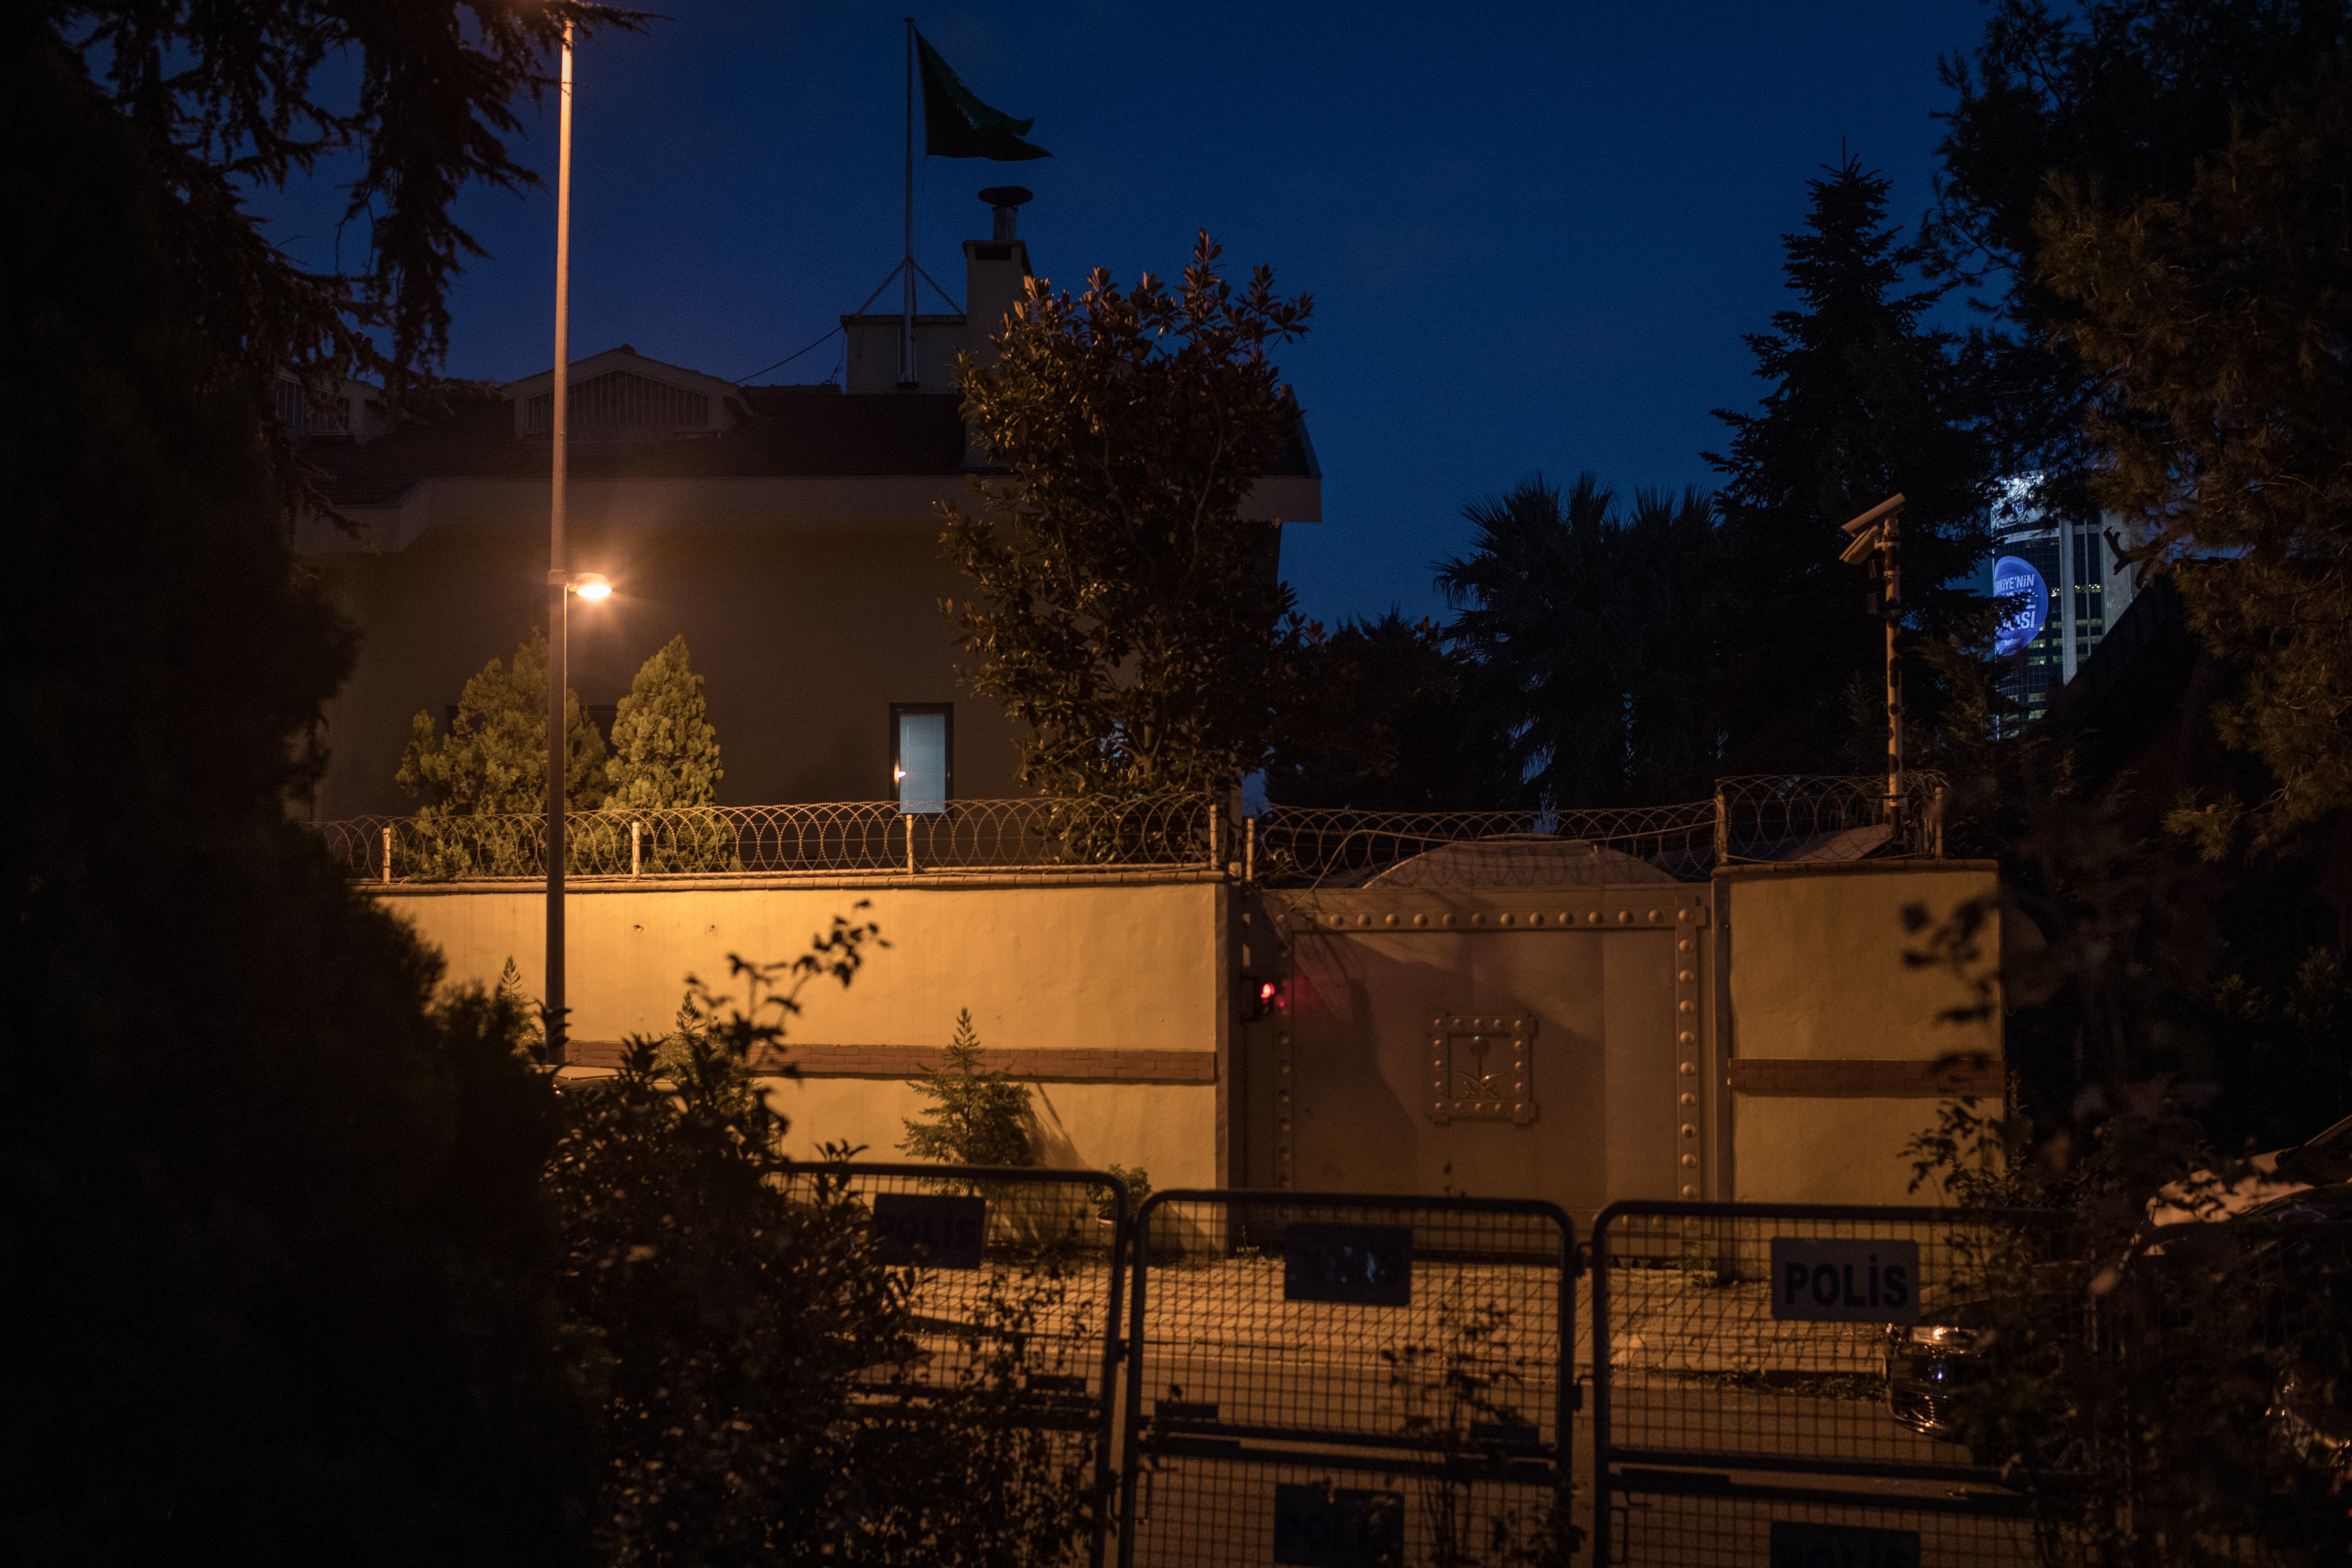 The entrance gate of the Saudi Arabian Consulate is seen on October 7, 2018 in Istanbul, Turkey. Fears are growing over the fate of missing journalist Jamal Khashoggi after Turkish officials said they believe he was murdered inside the Saudi consulate.